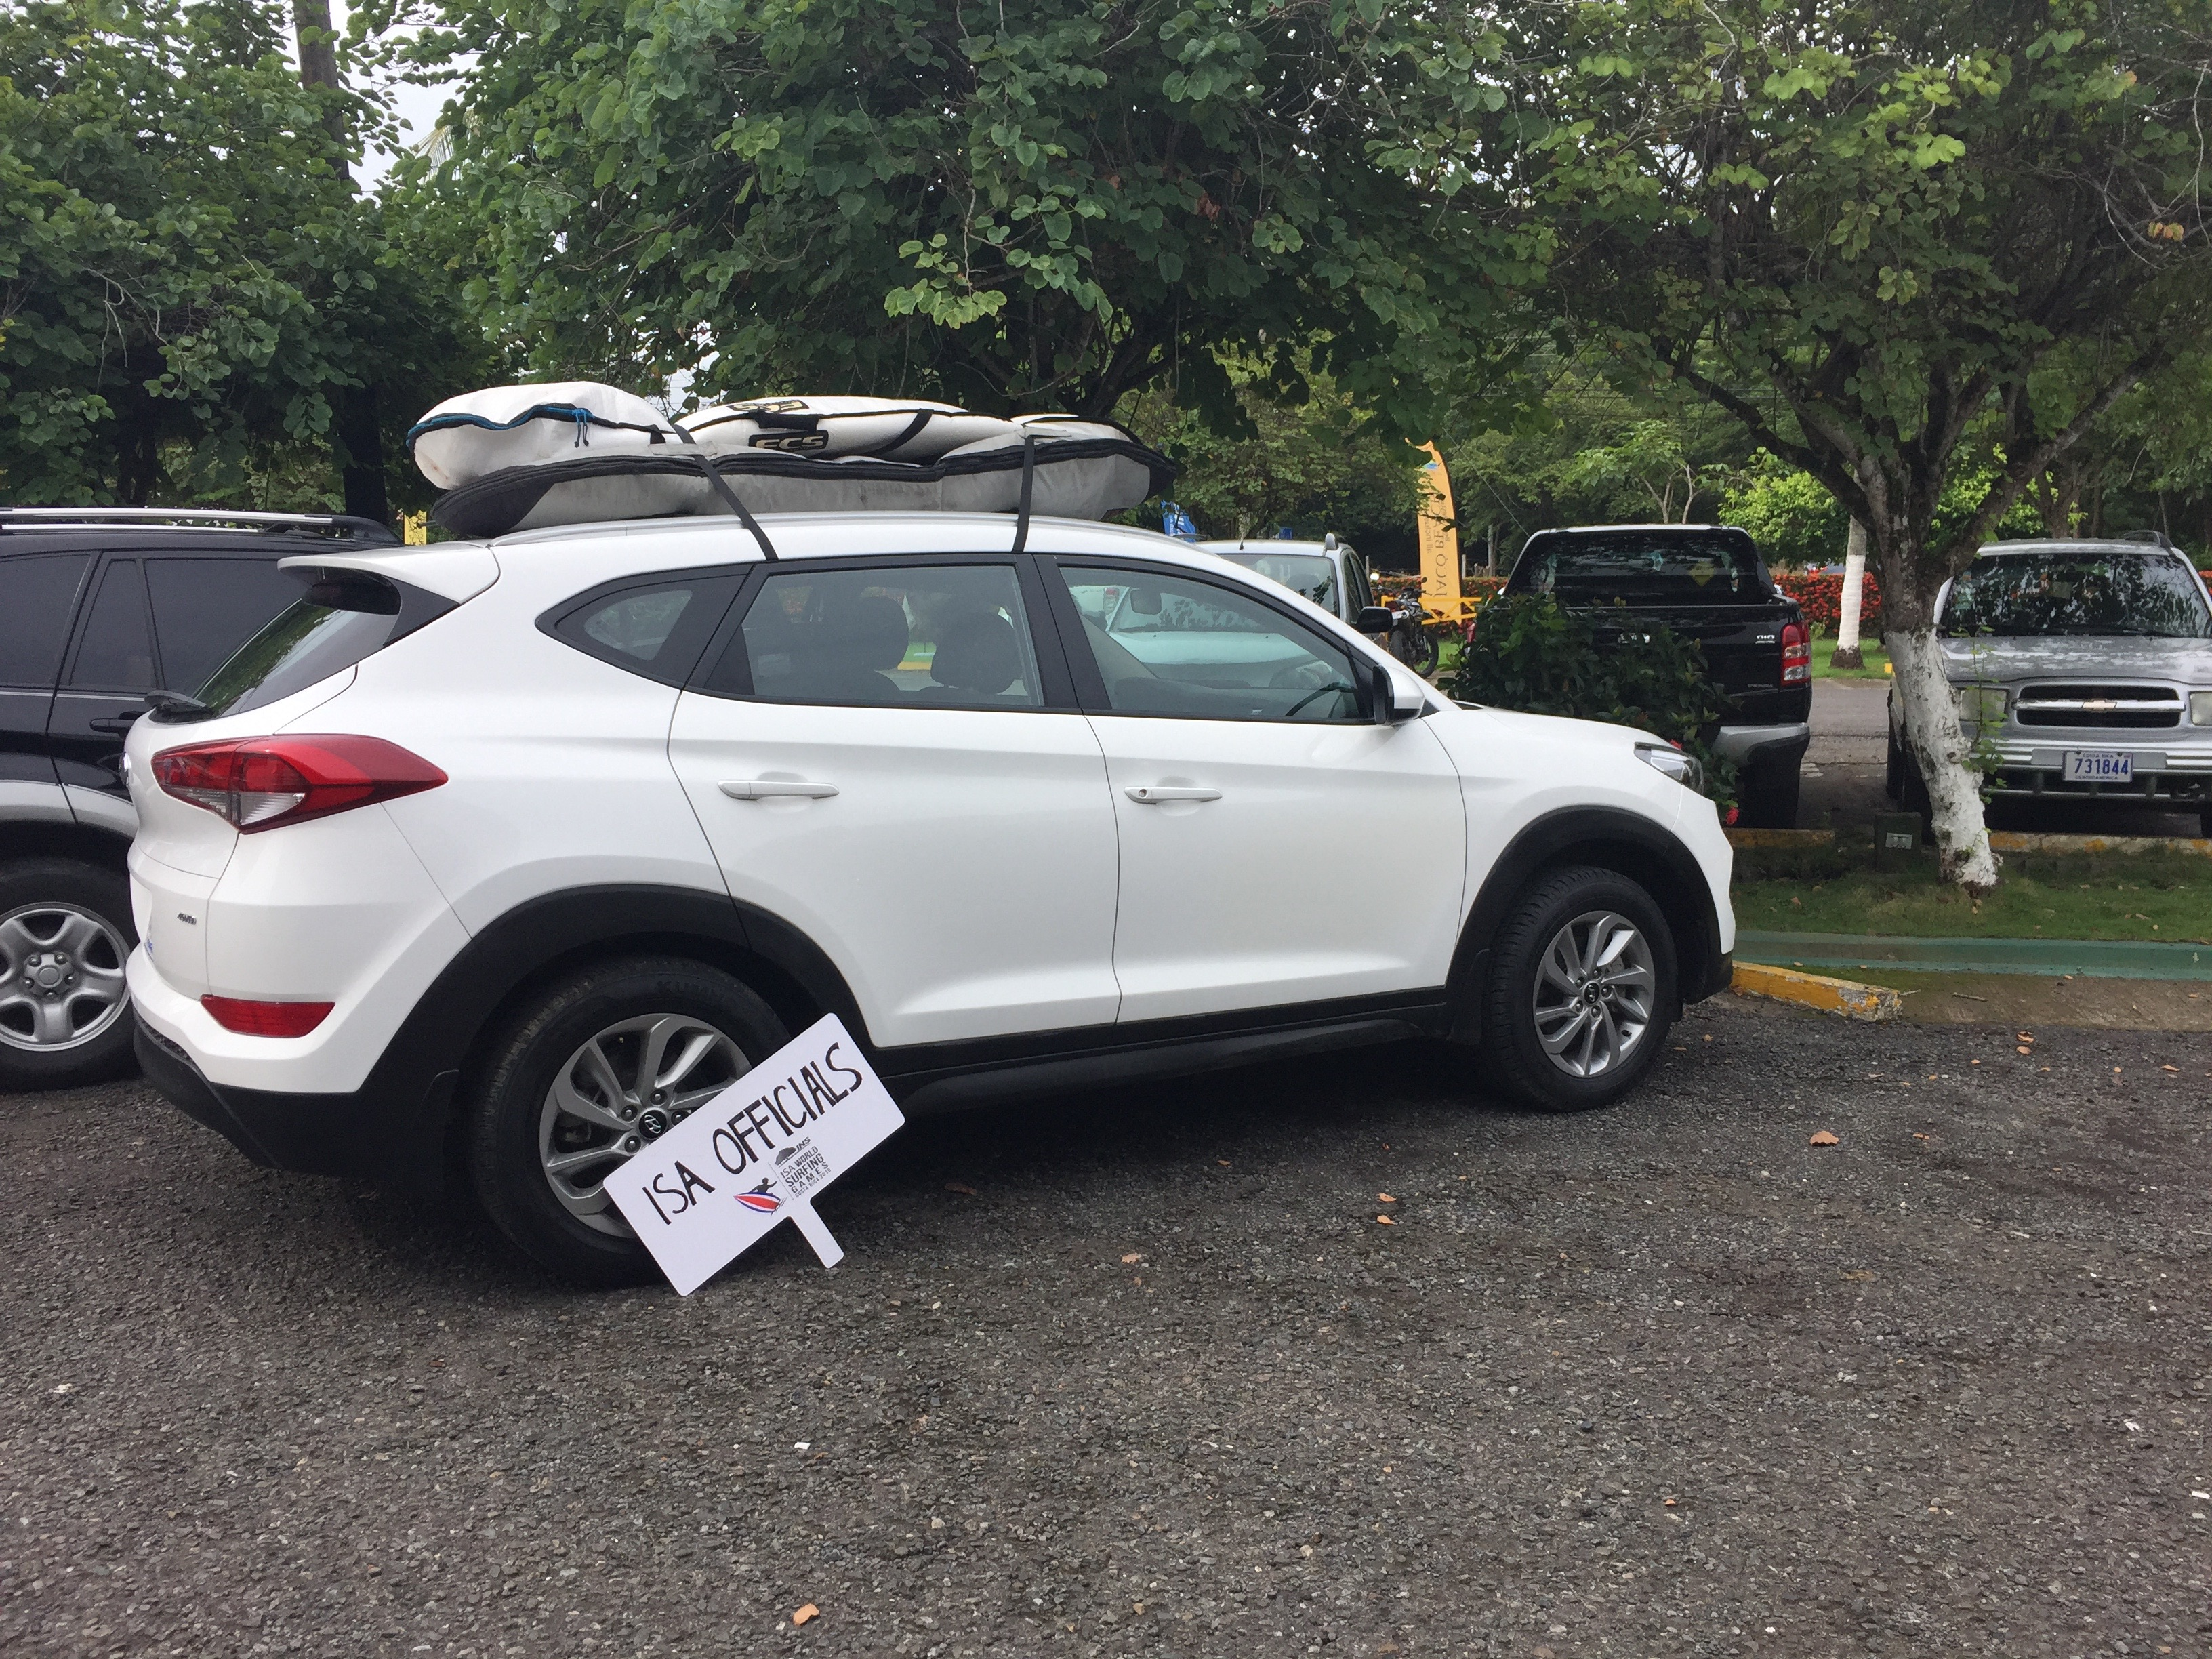 A white SUV sits parked with surfboards strapped on the roof in Costa Rica.